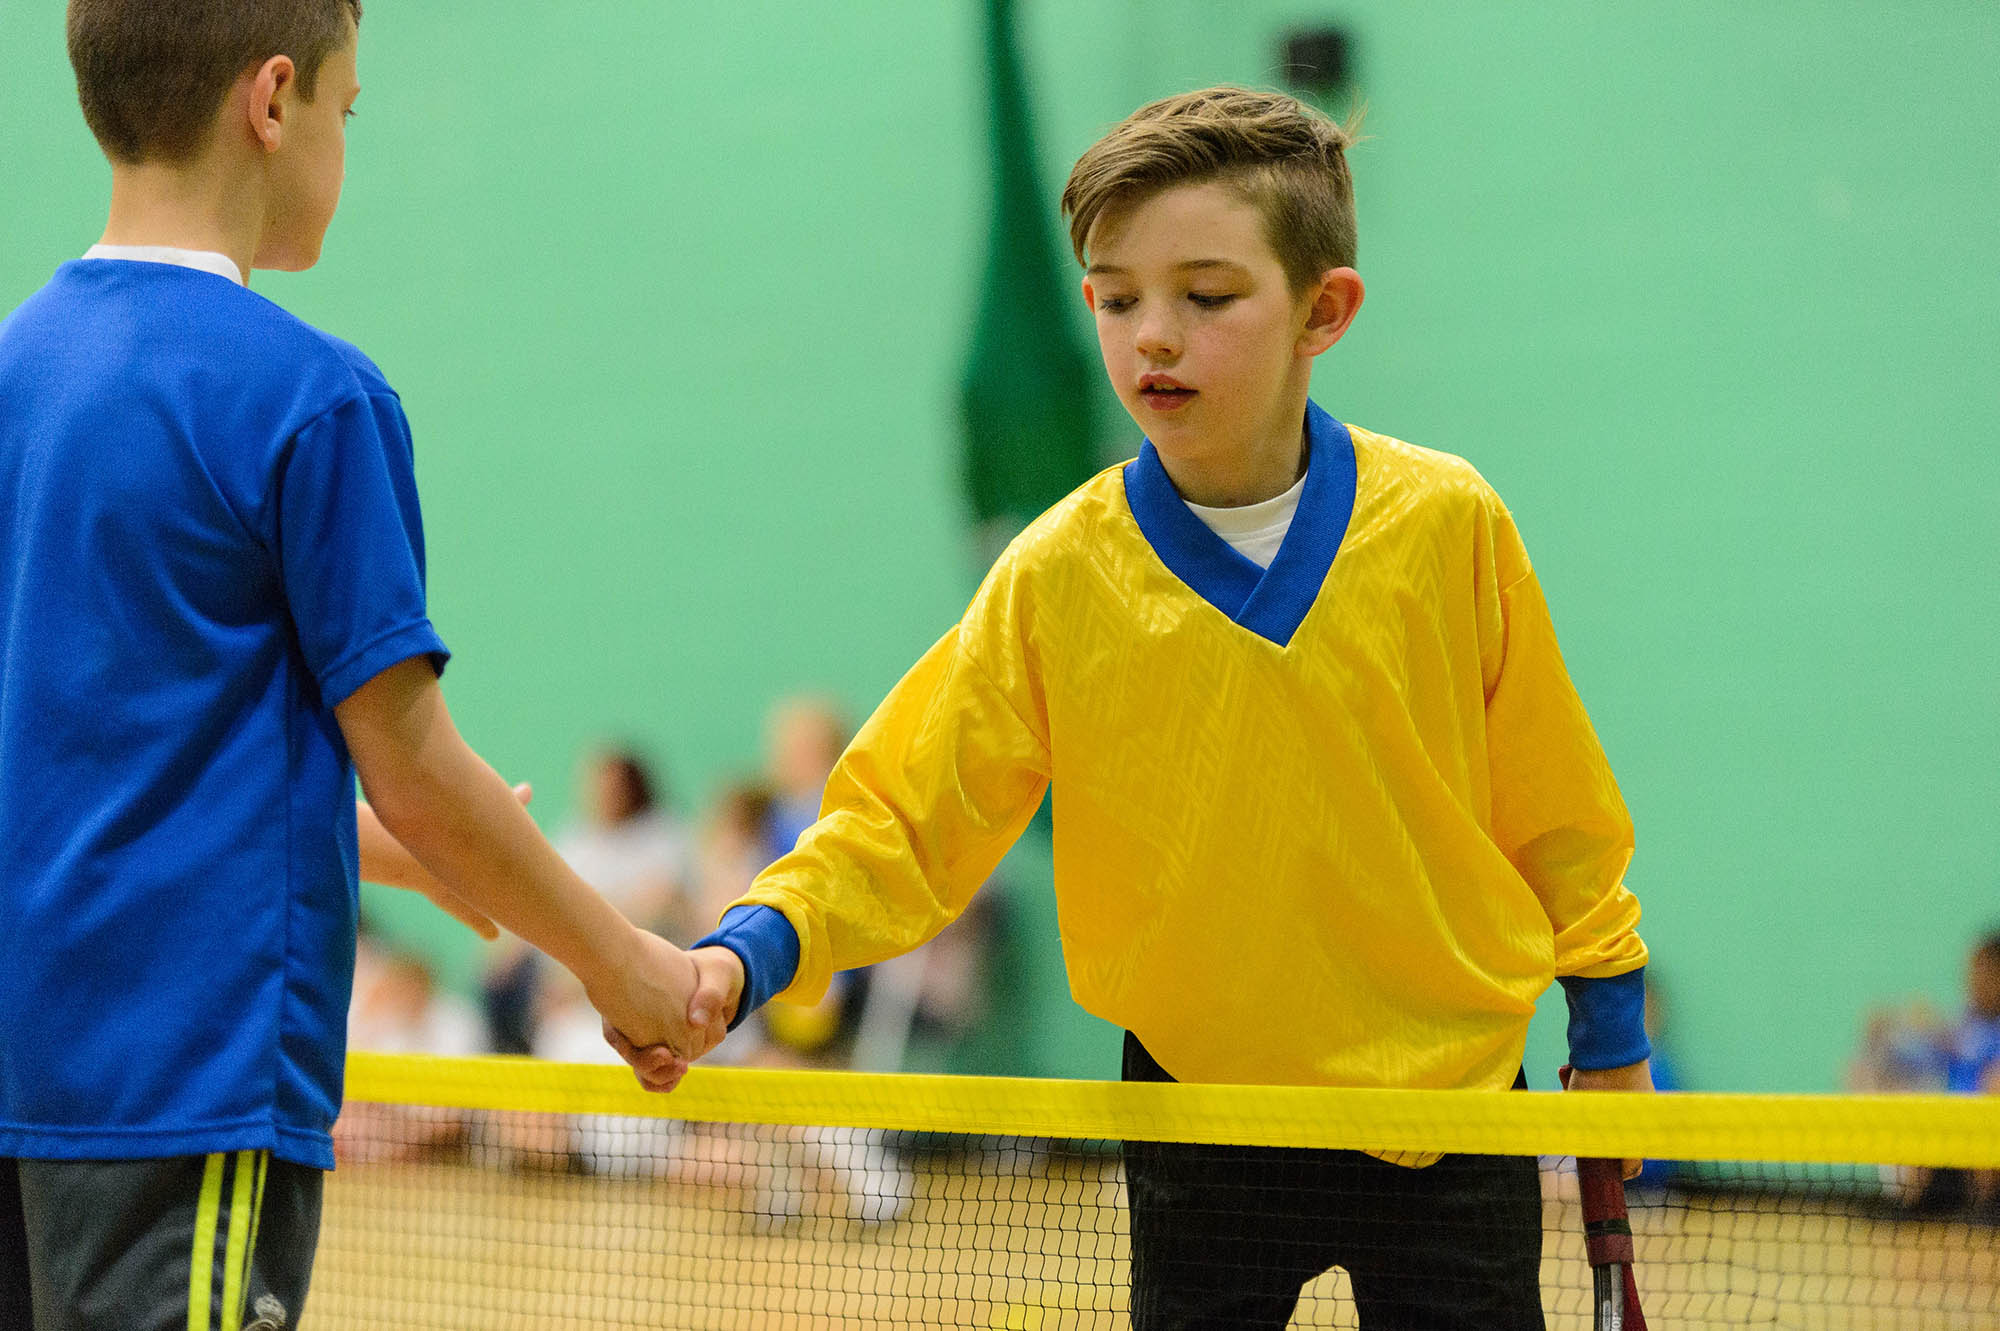 two boys shaking hands at the tennis net